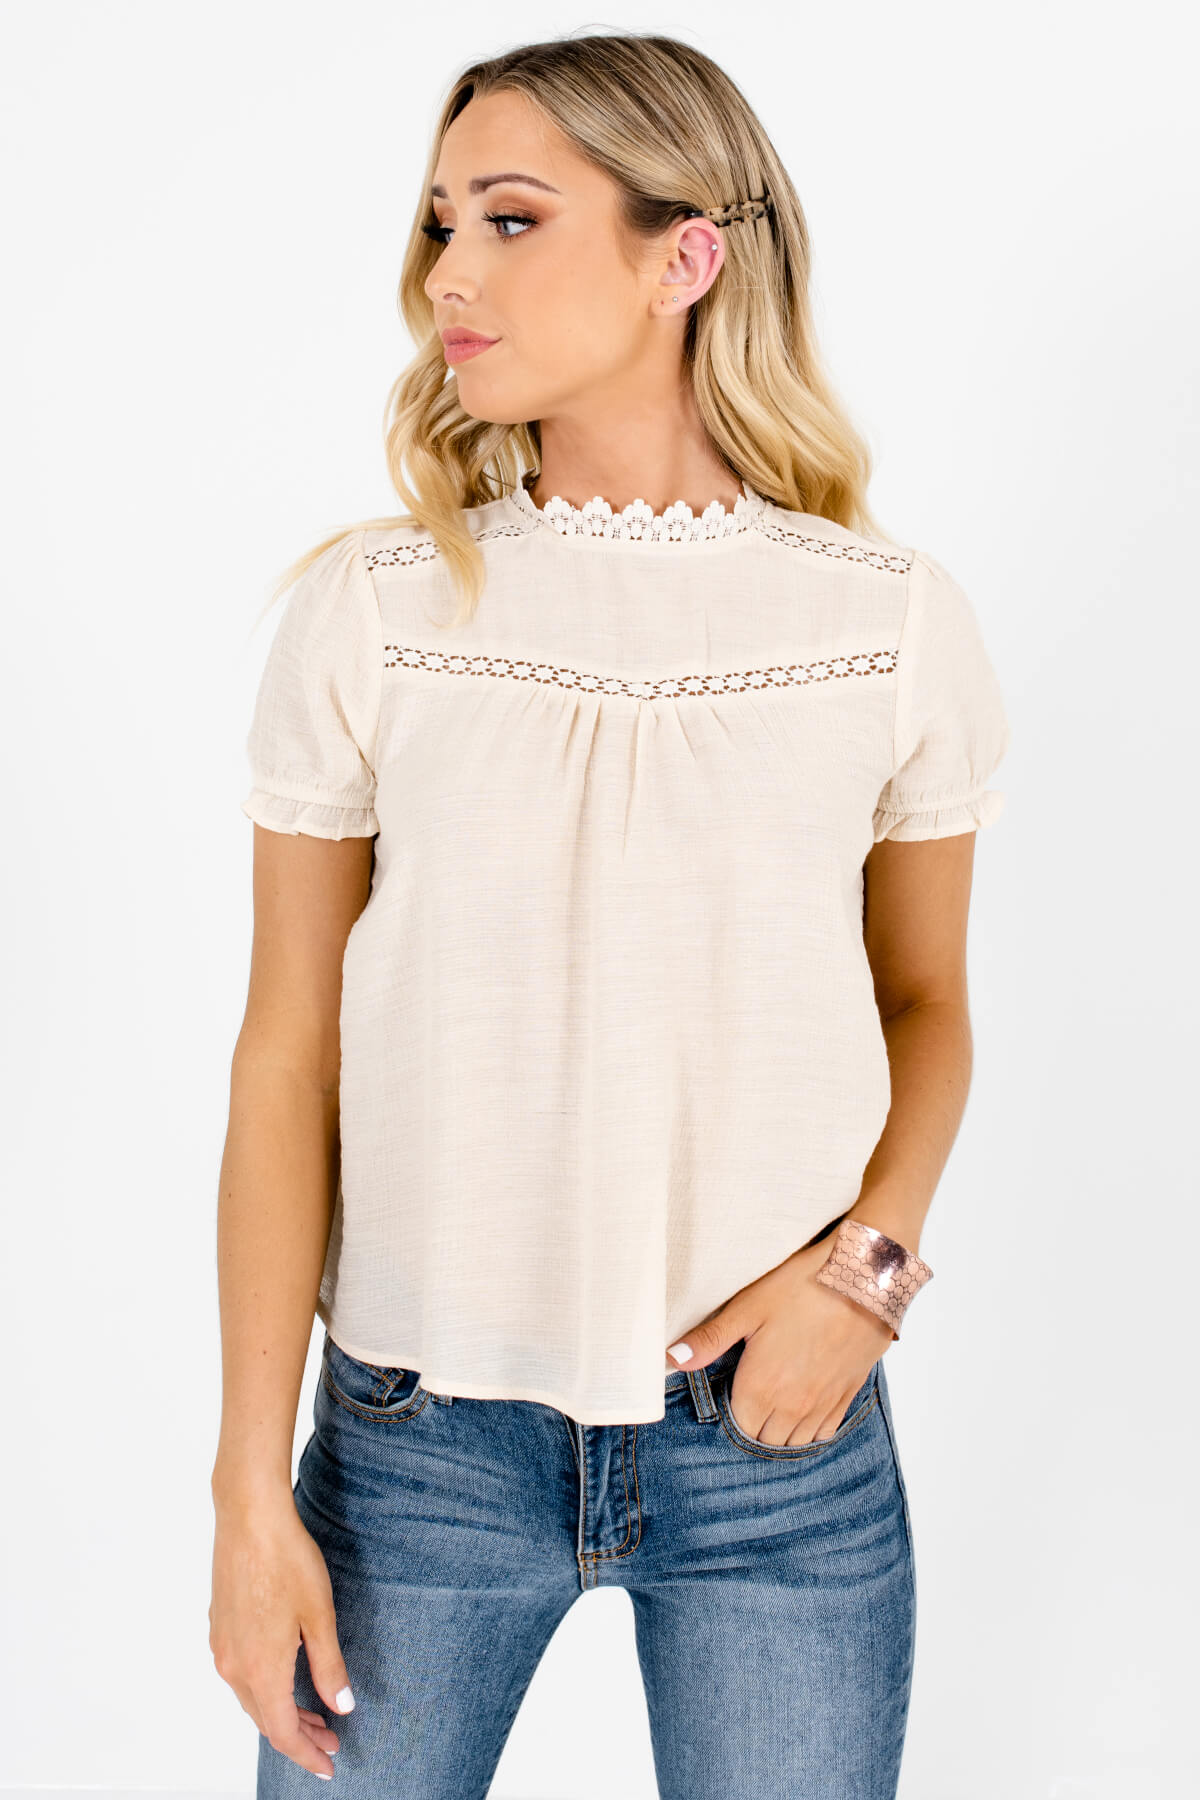 Beige Crochet Accented Boutique Blouses for Women